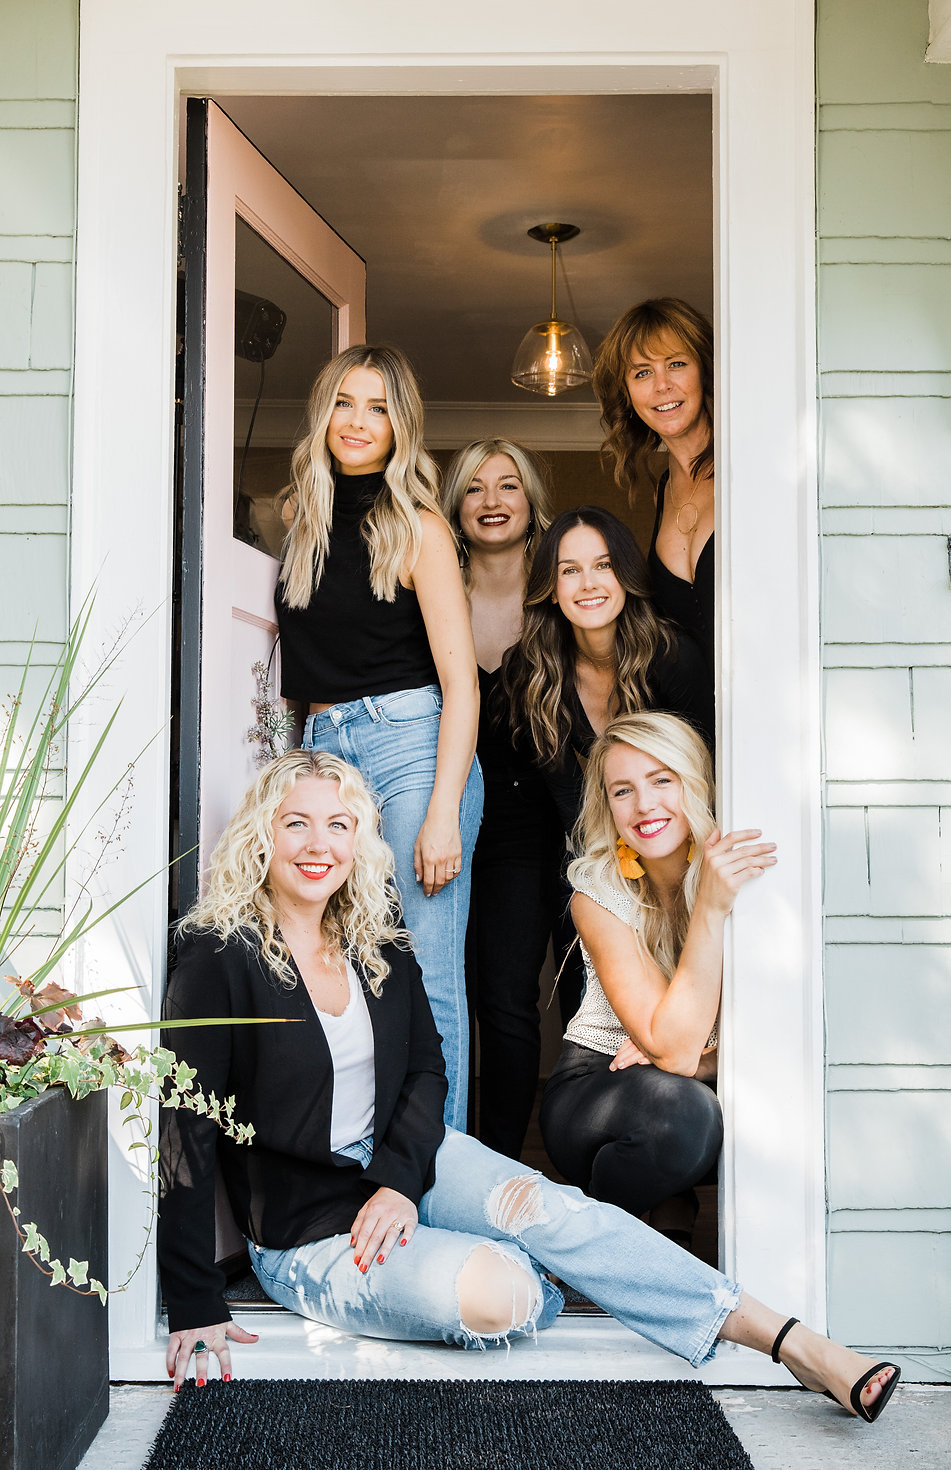 The team of professional stylist at La Vie Salon West Seattle